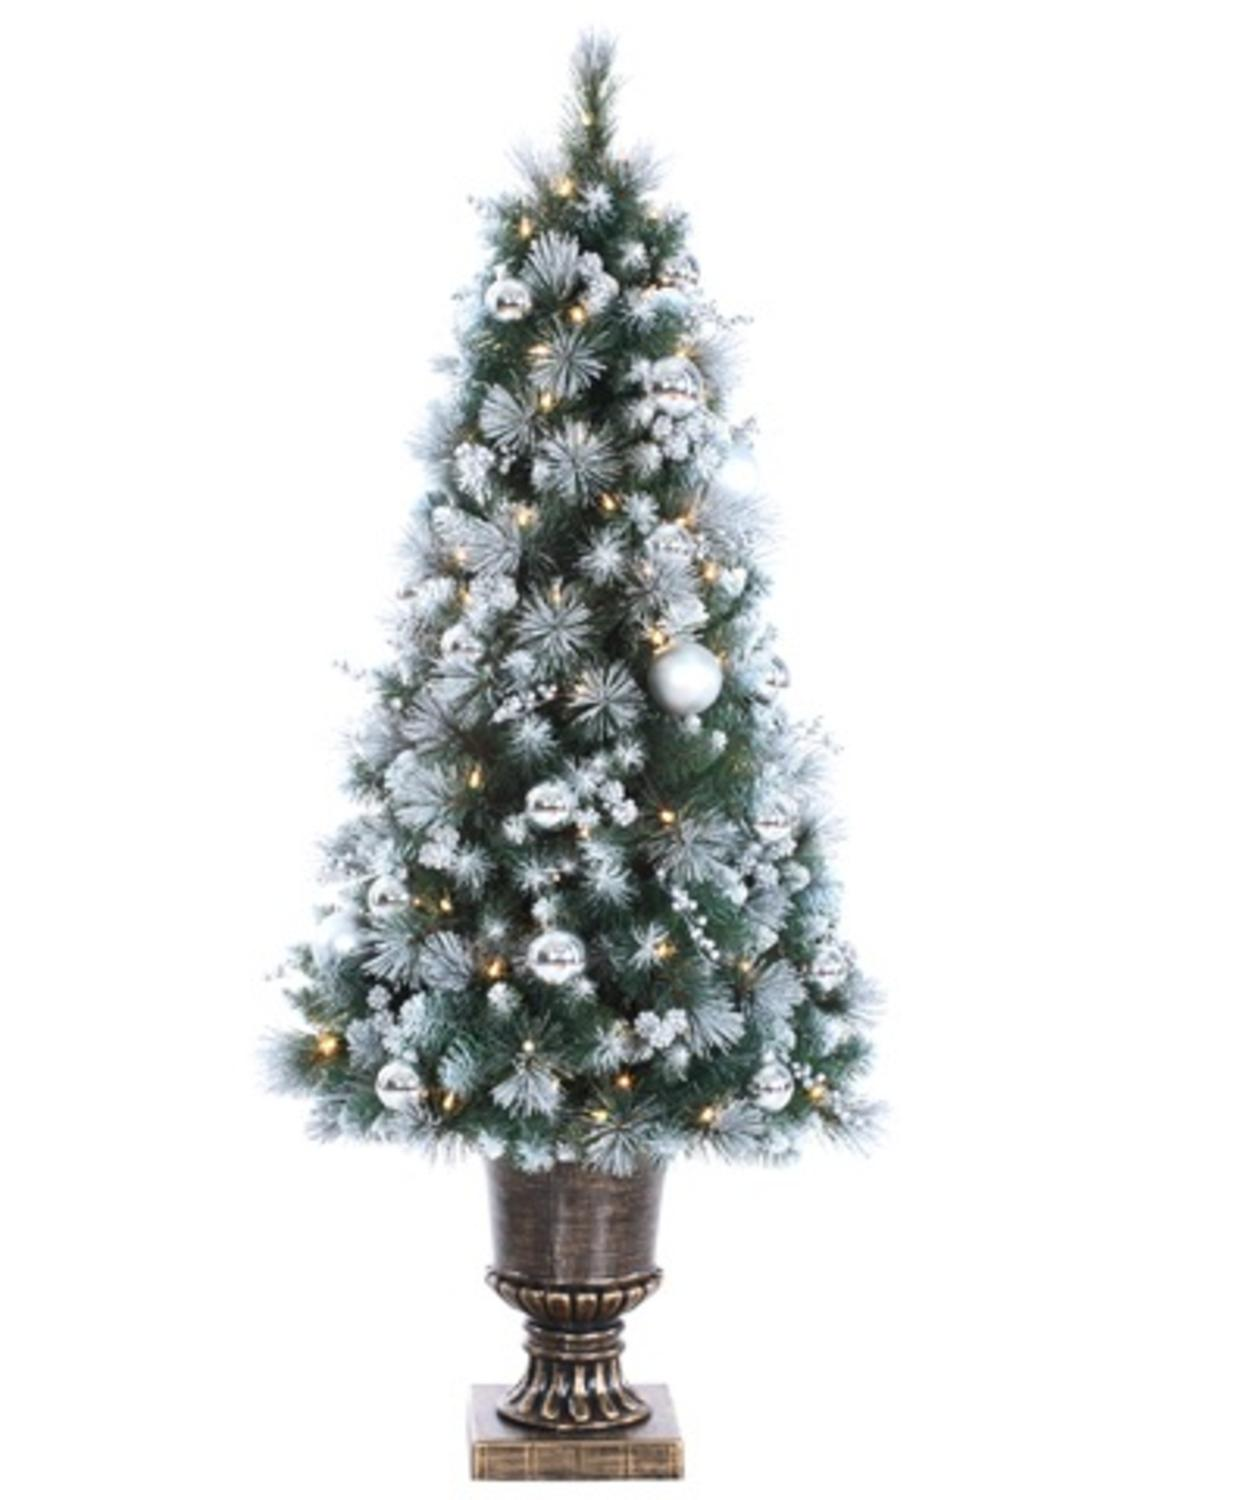 Potted Artificial Christmas Tree: 4' Lighted Pre-Decorated Potted Canadian Pine Artificial